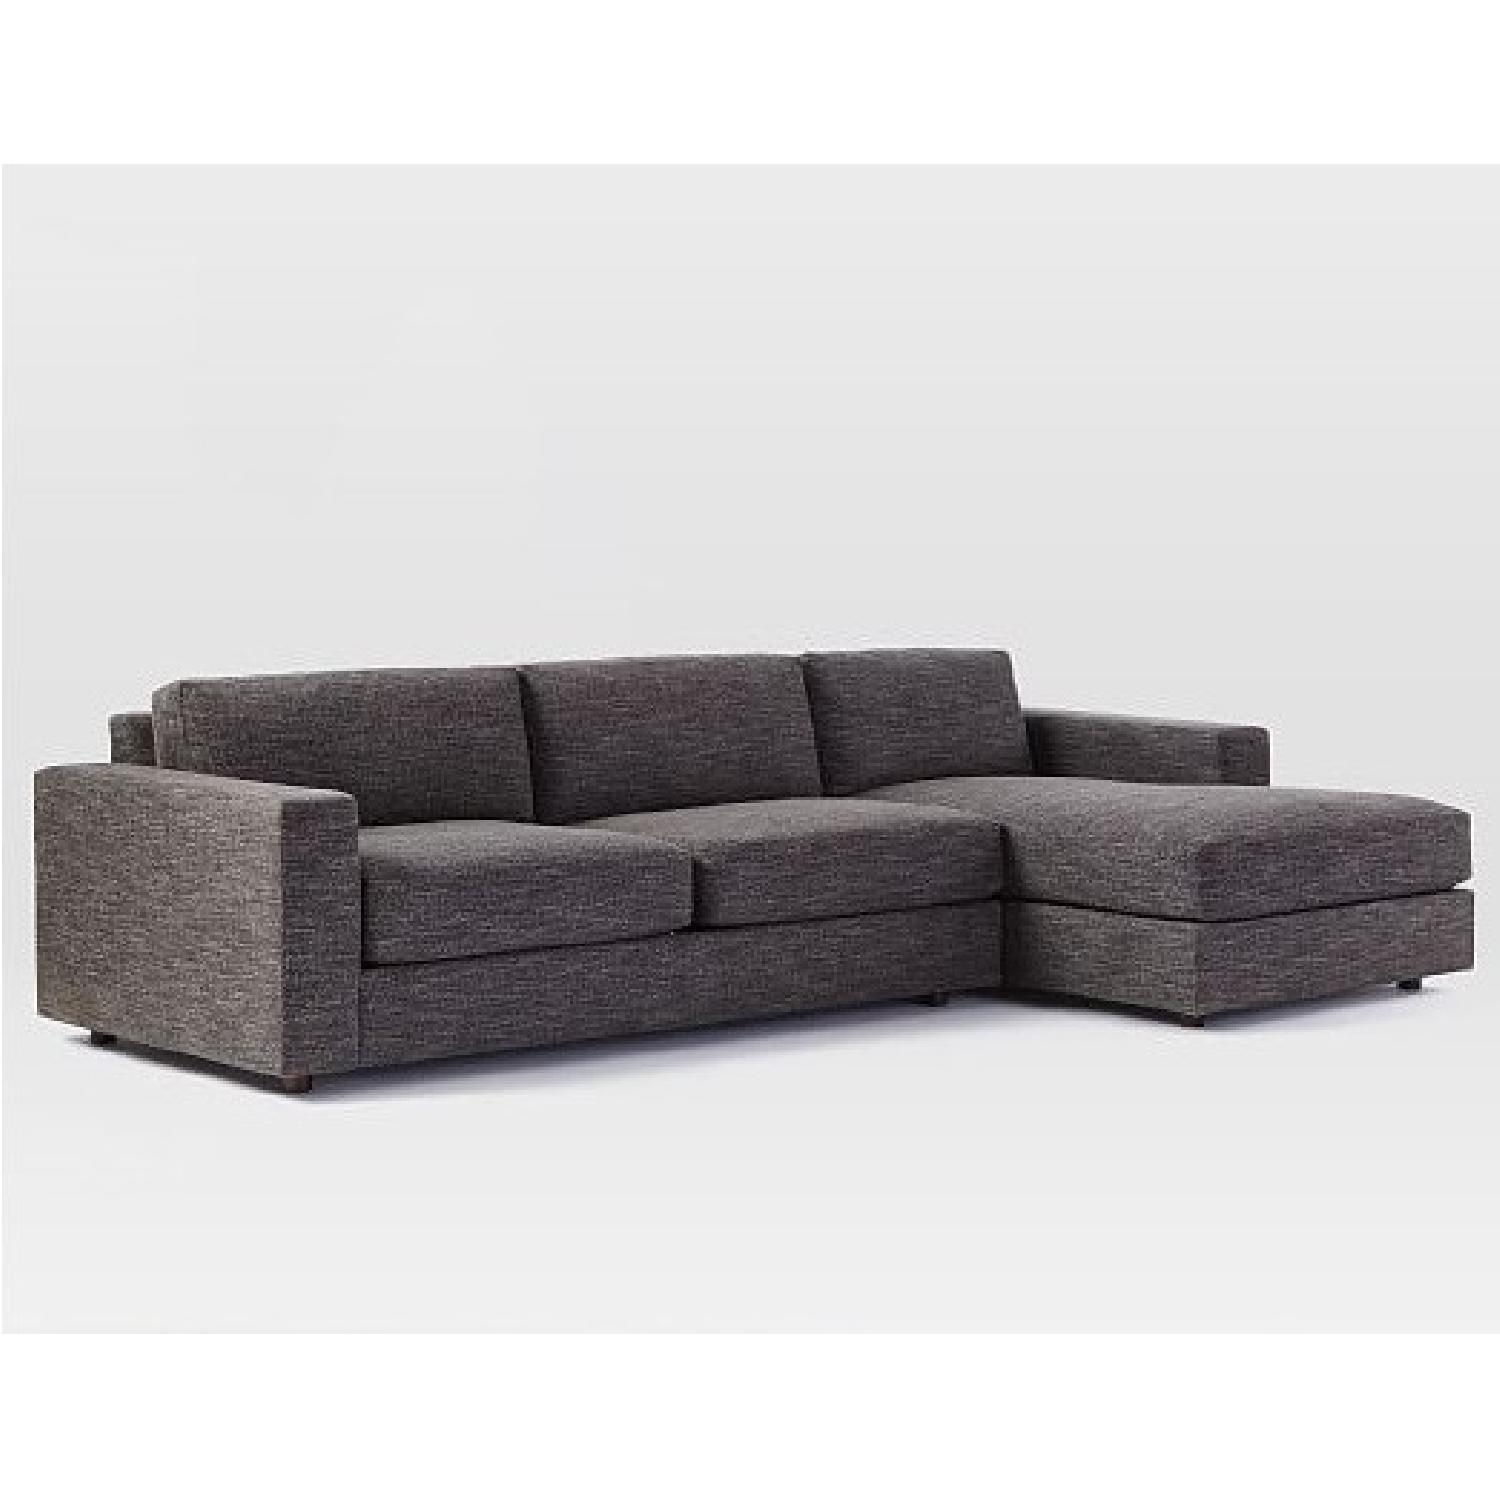 West Elm Urban 2 Piece Large Sectional in Heathered Tweed - image-5